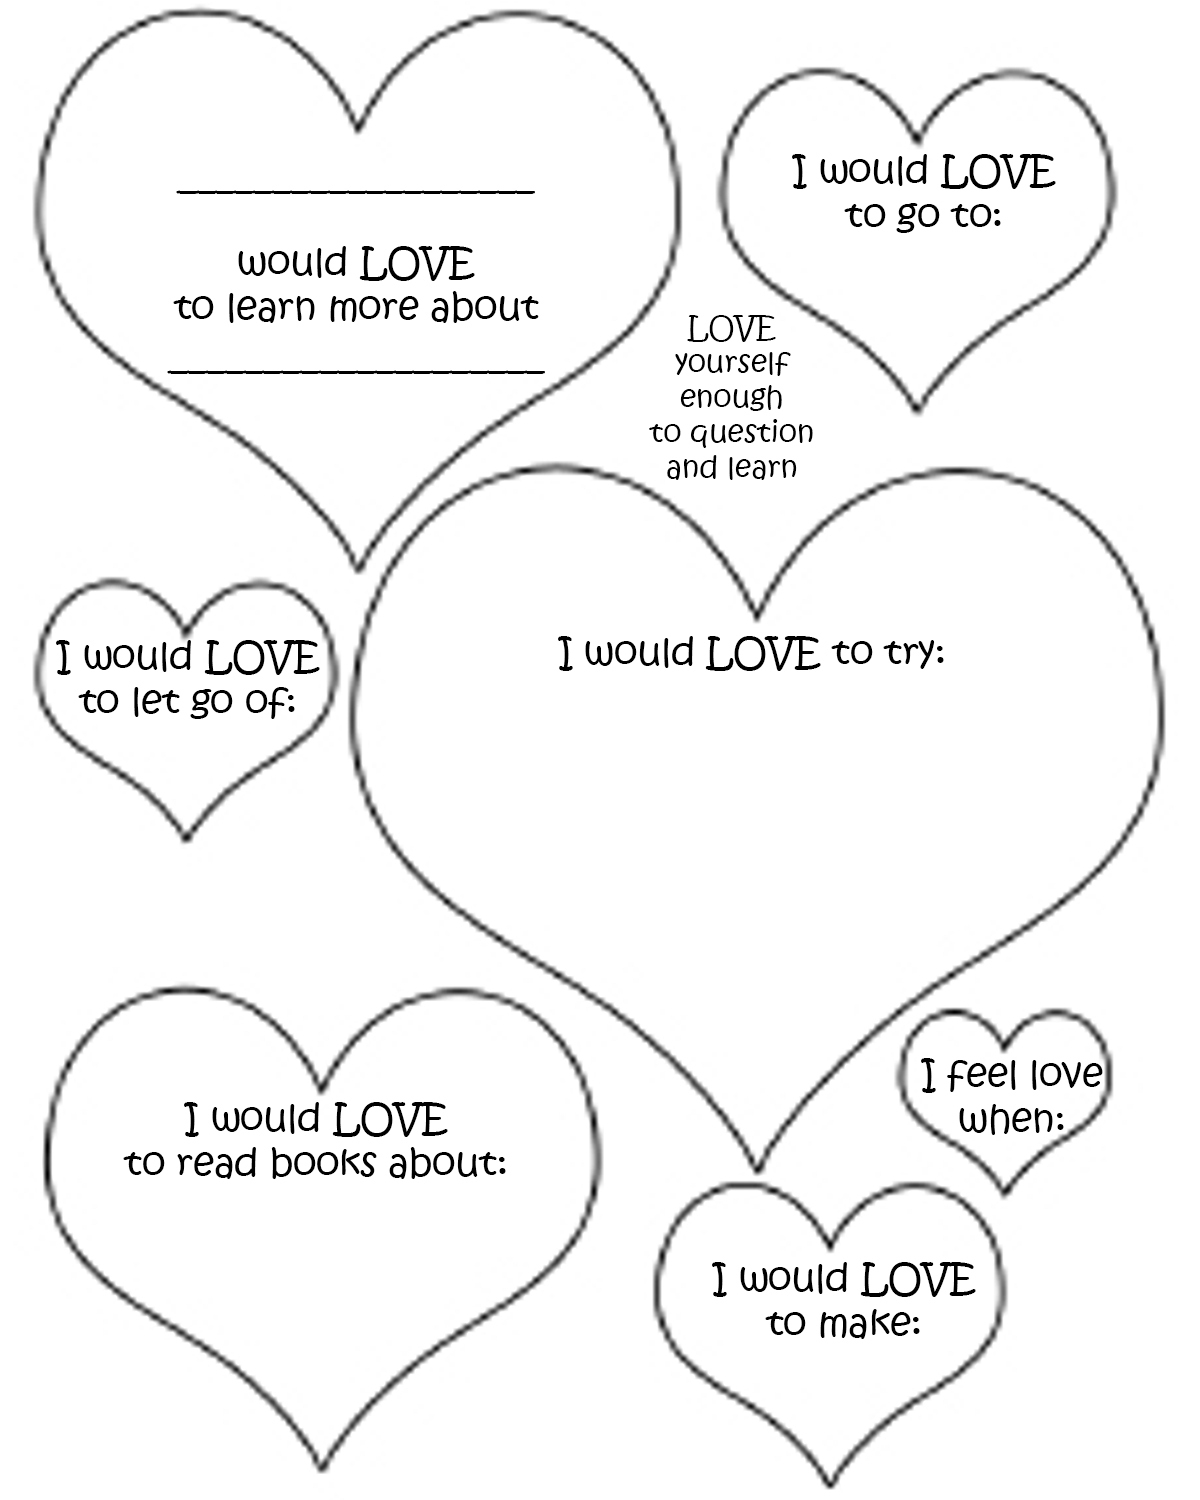 30 Self Esteem Worksheets To Print   Kittybabylove   Self Esteem Printable Worksheets For Kids